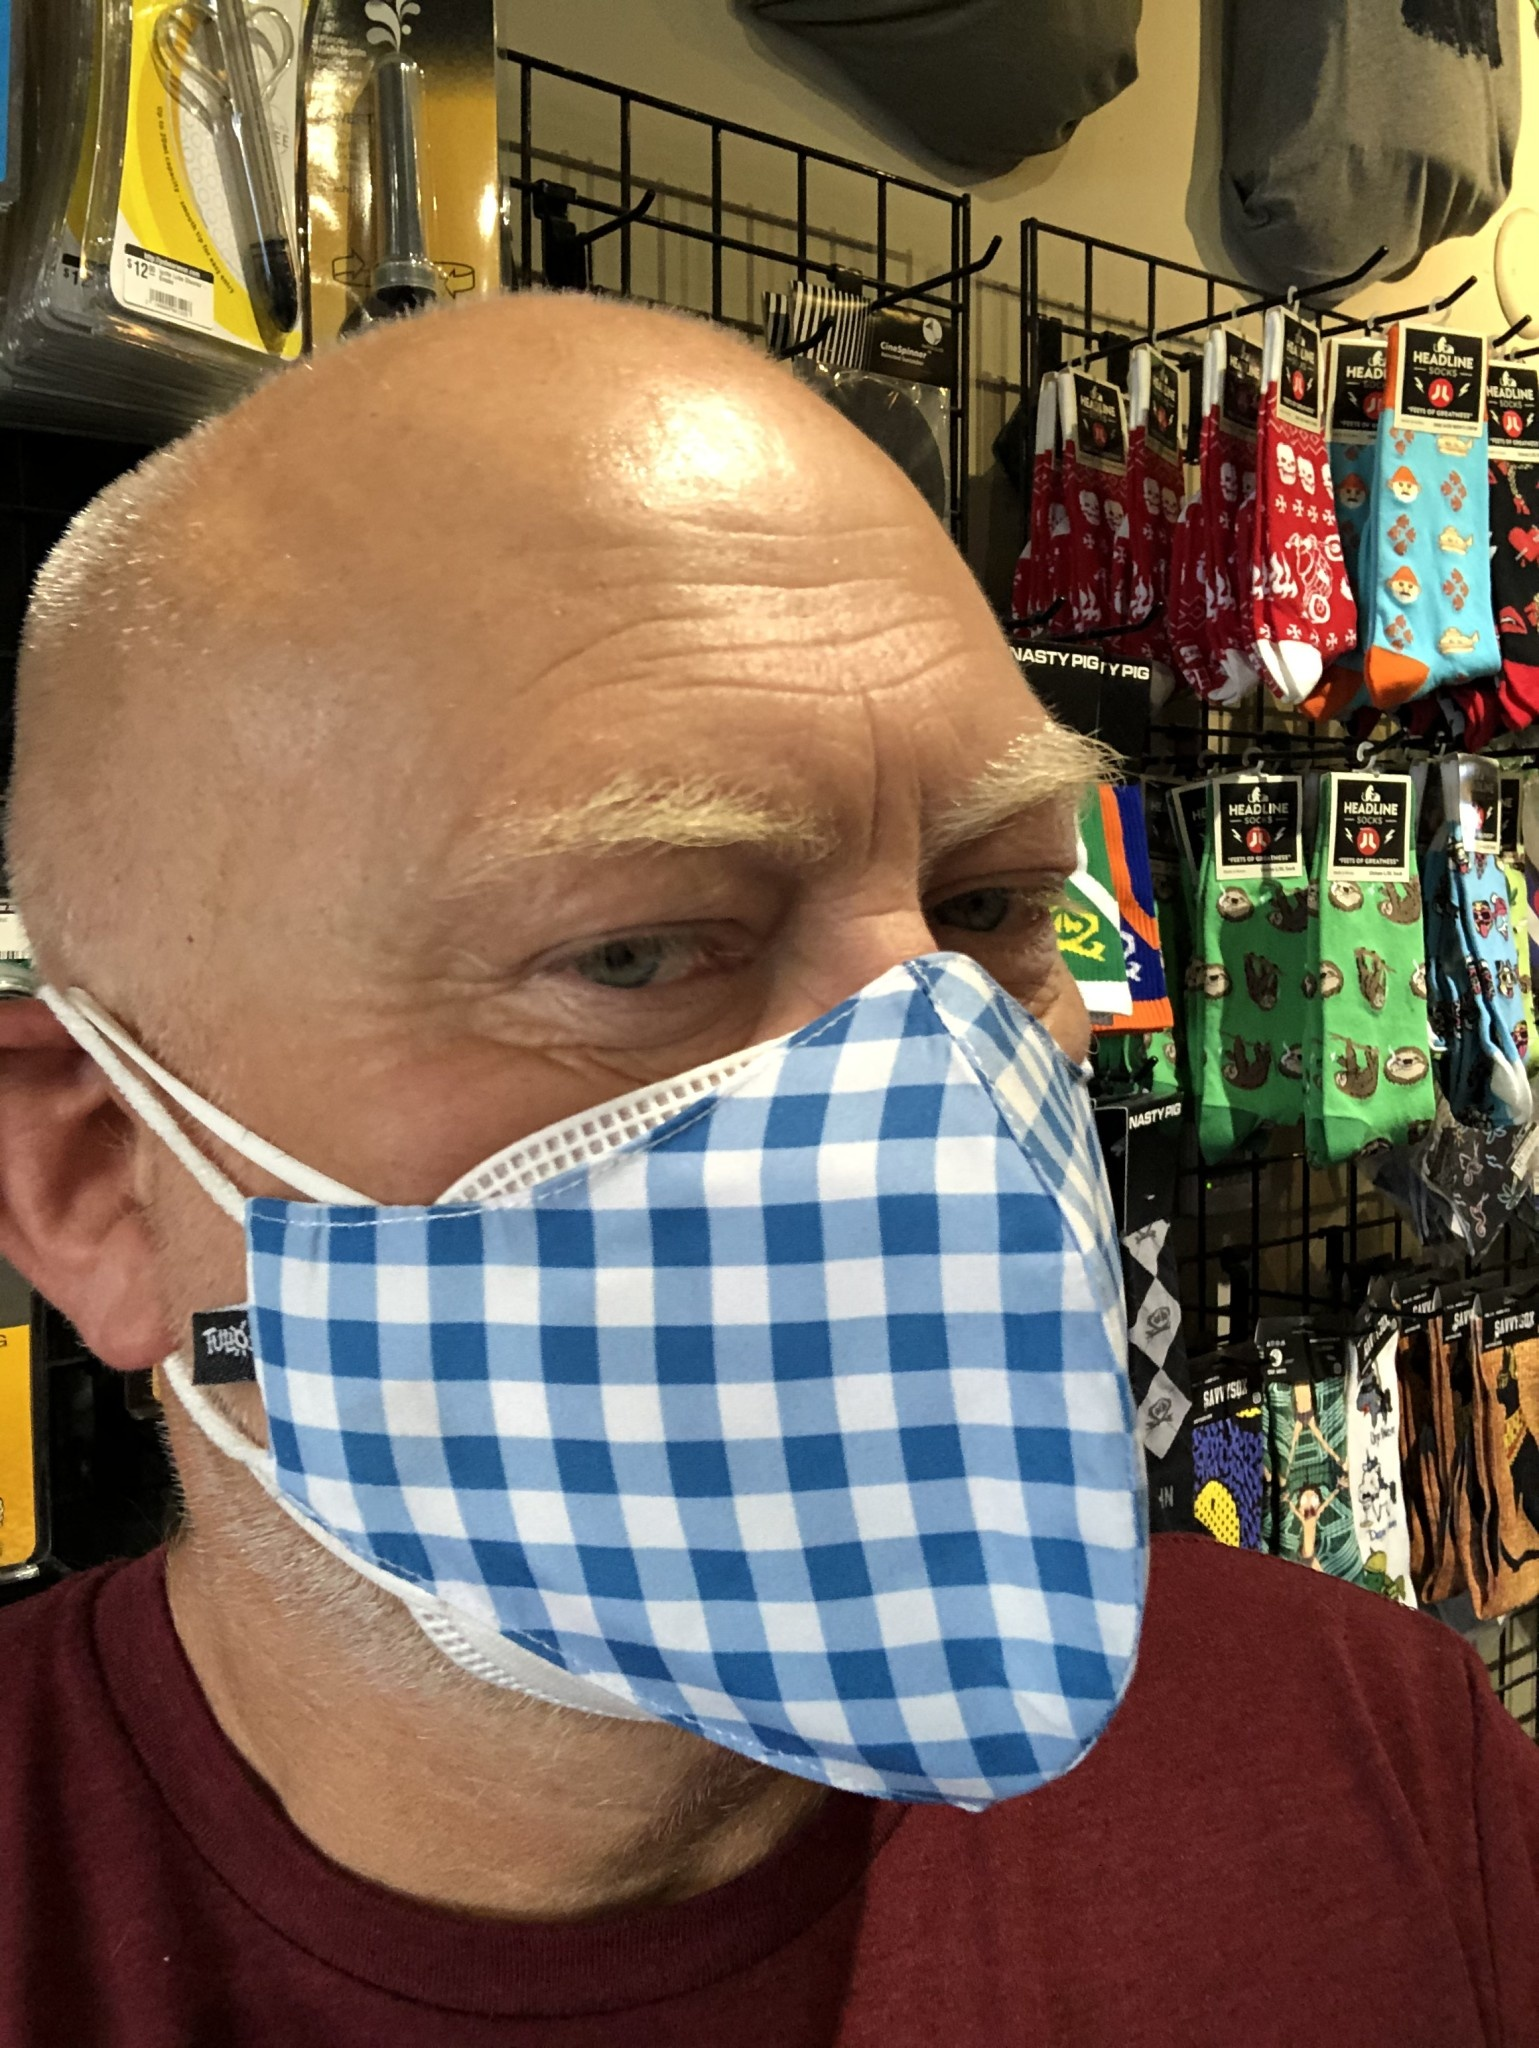 Face Mask, Which one is you? Blue Gingham